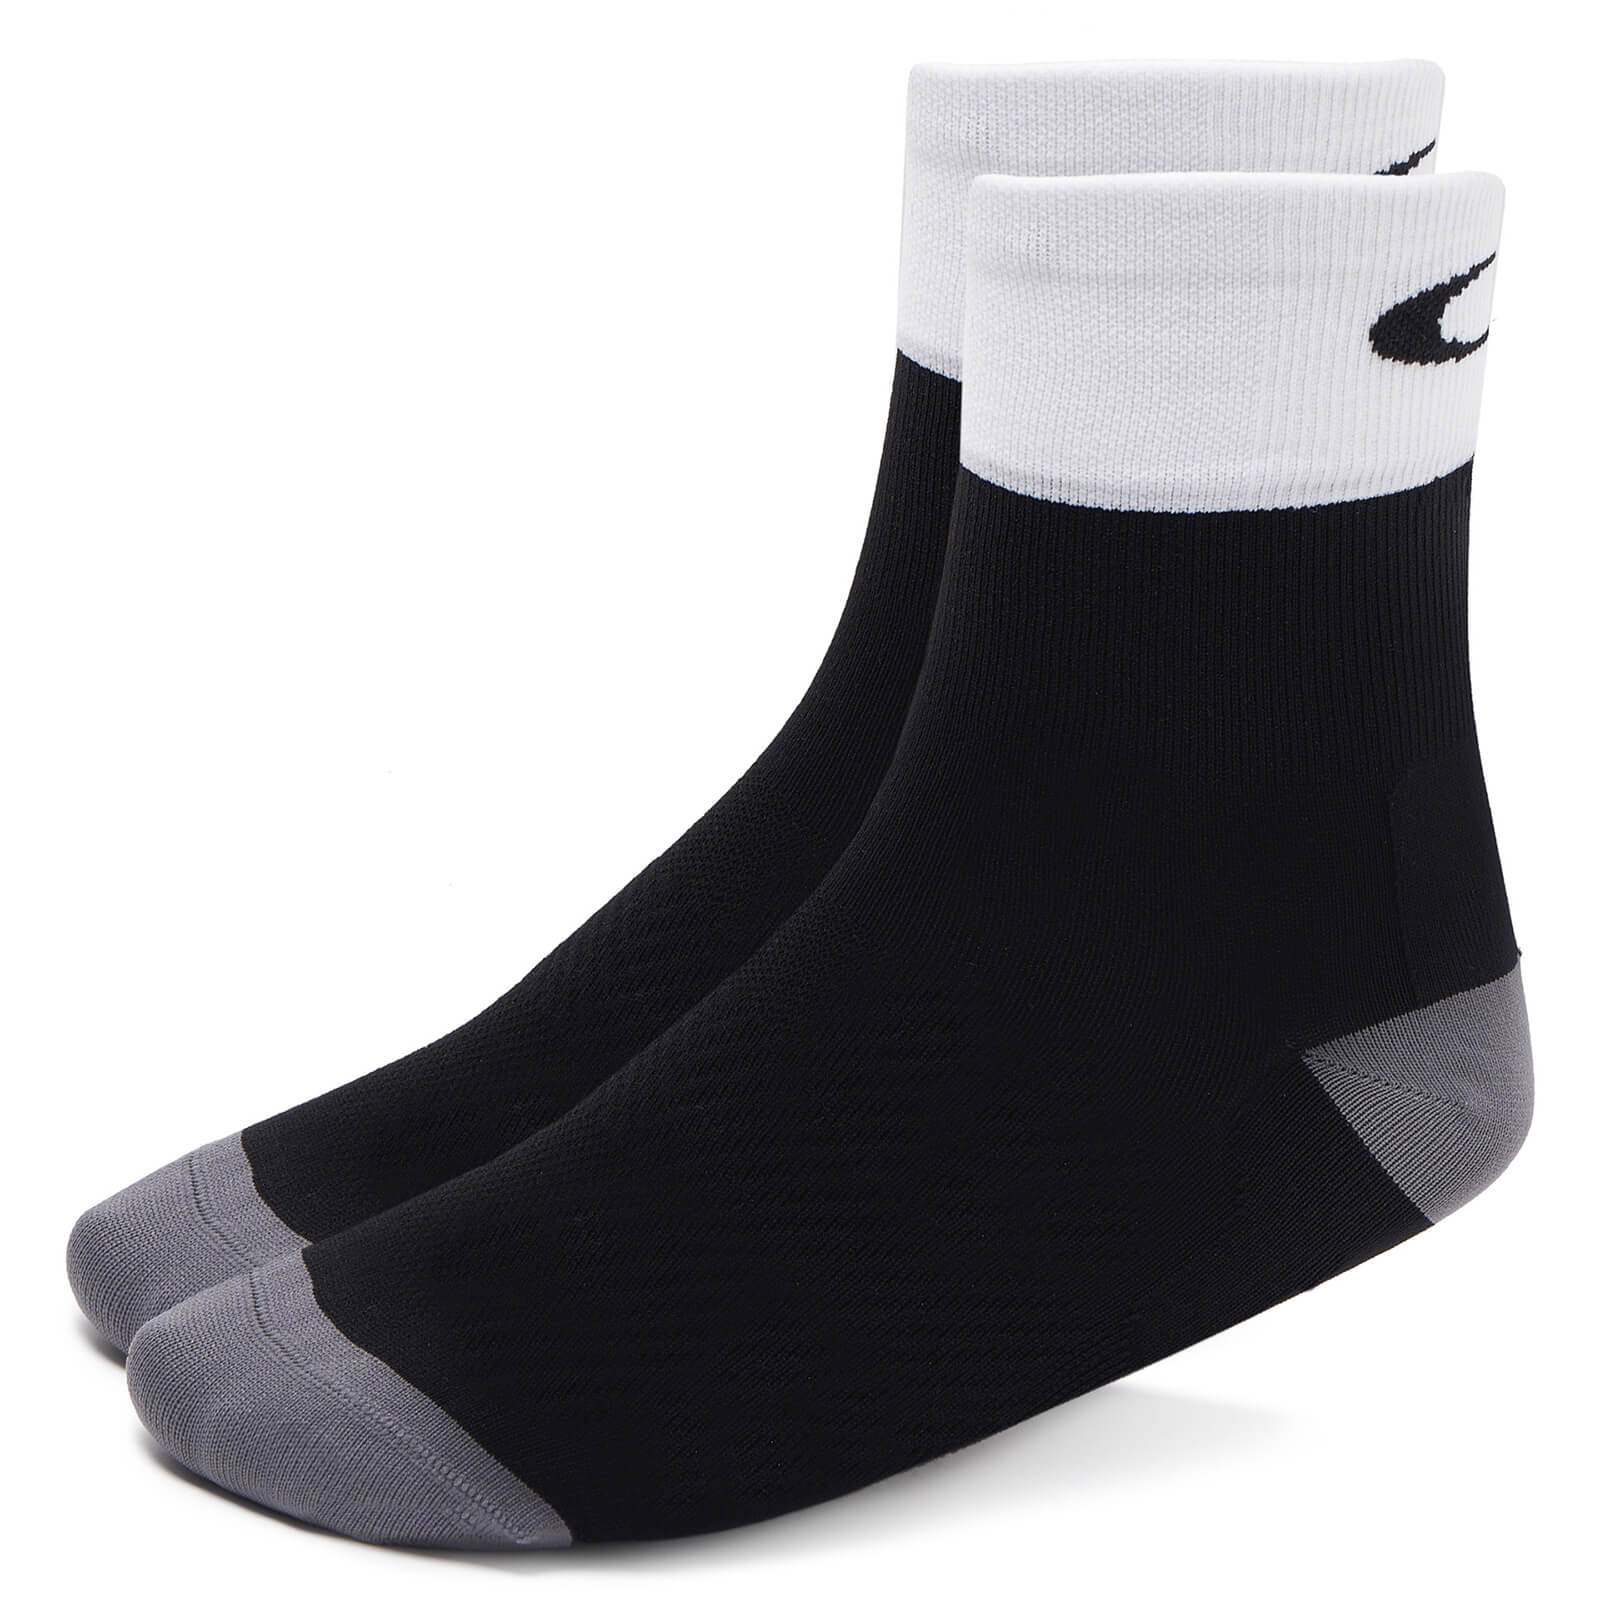 Oakley Cycling Socks - Blackout